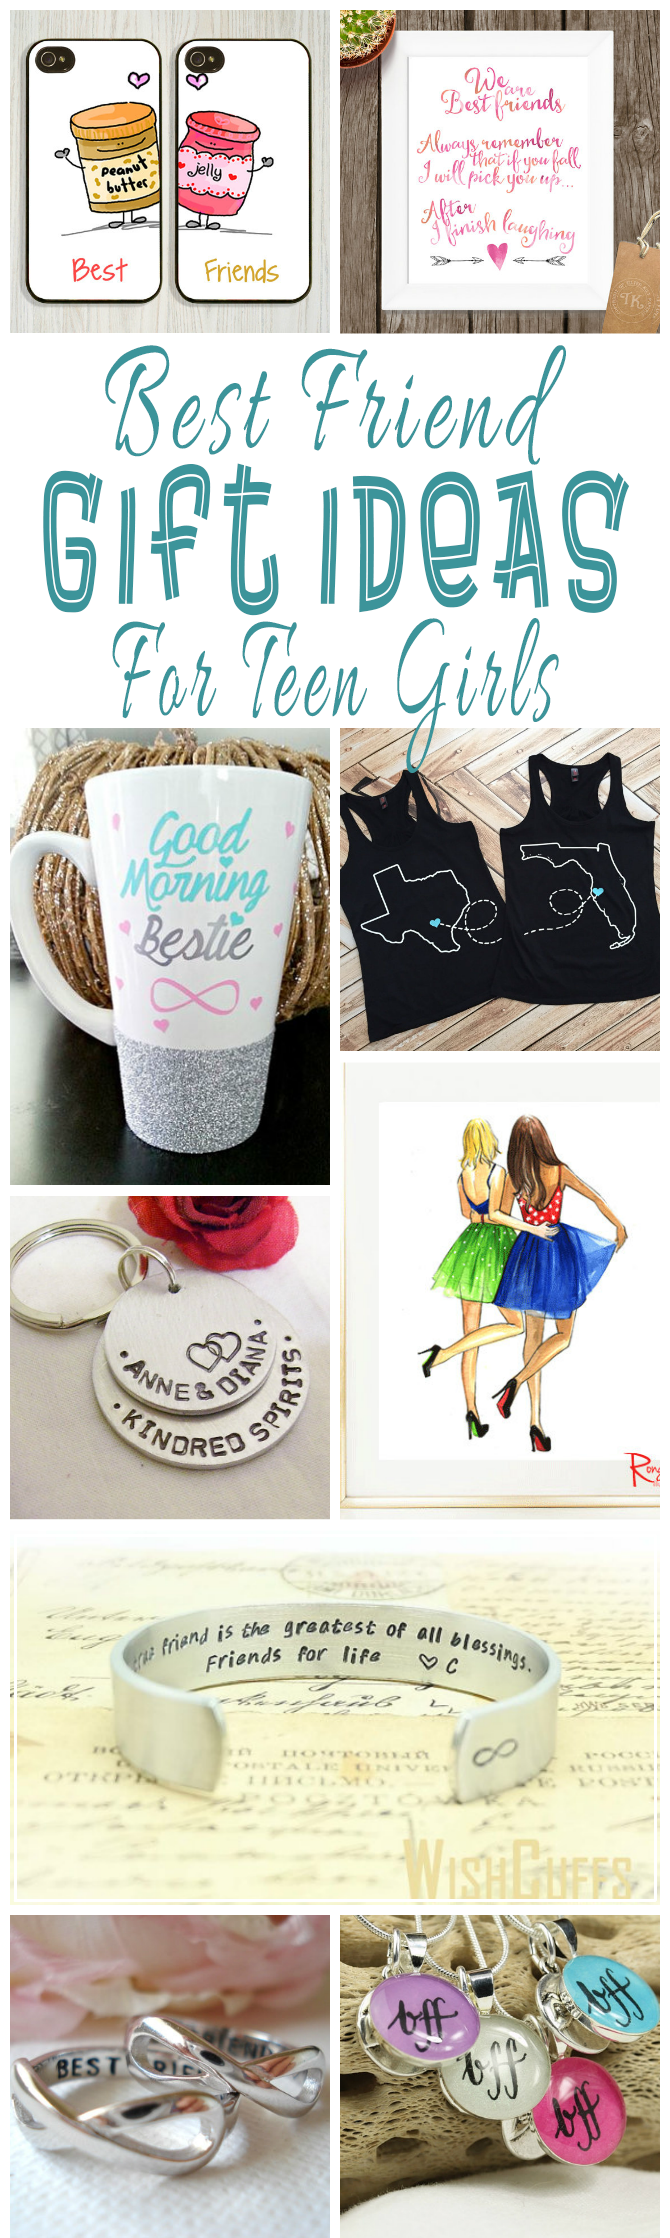 Best Friend Gift Ideas For S